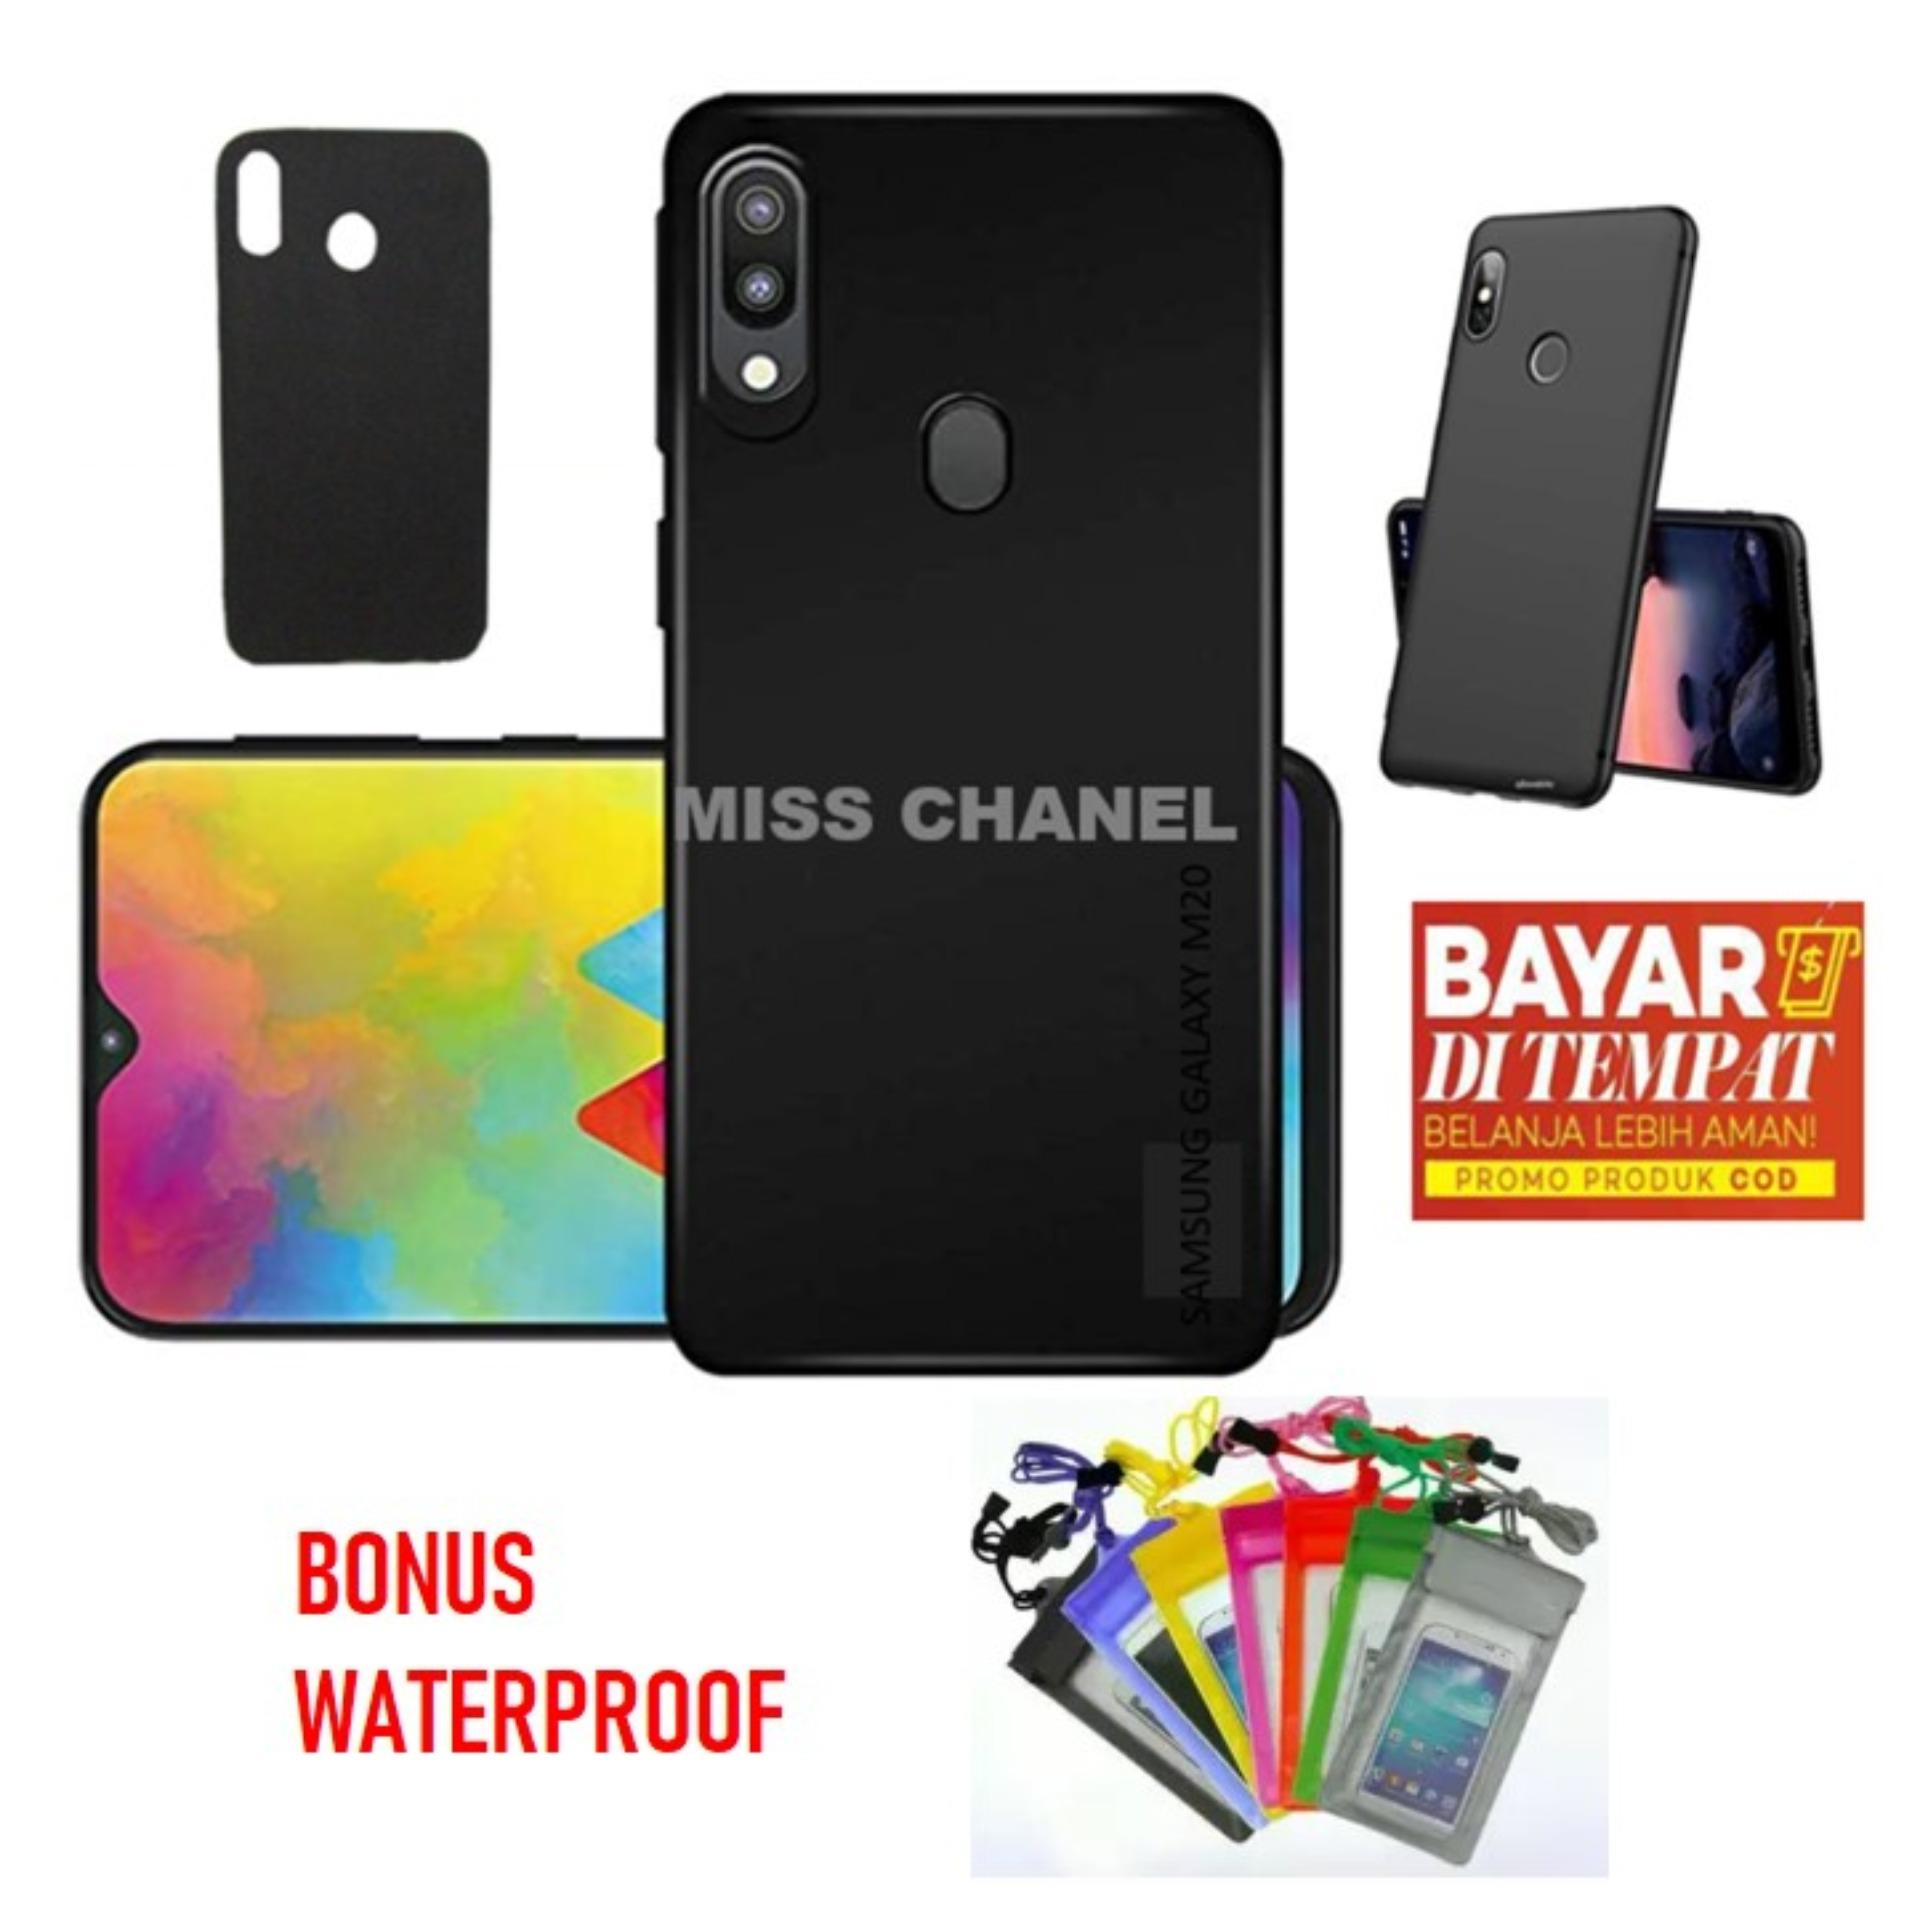 For SAMSUNG GALACY M20  Case Slim Blackmatte / Case Samsung Galaxy M20   Blackmatte TPU Anti Slip  / Case Samsung Galaxy  M20 - Full Hitam  Bonus Waterproof